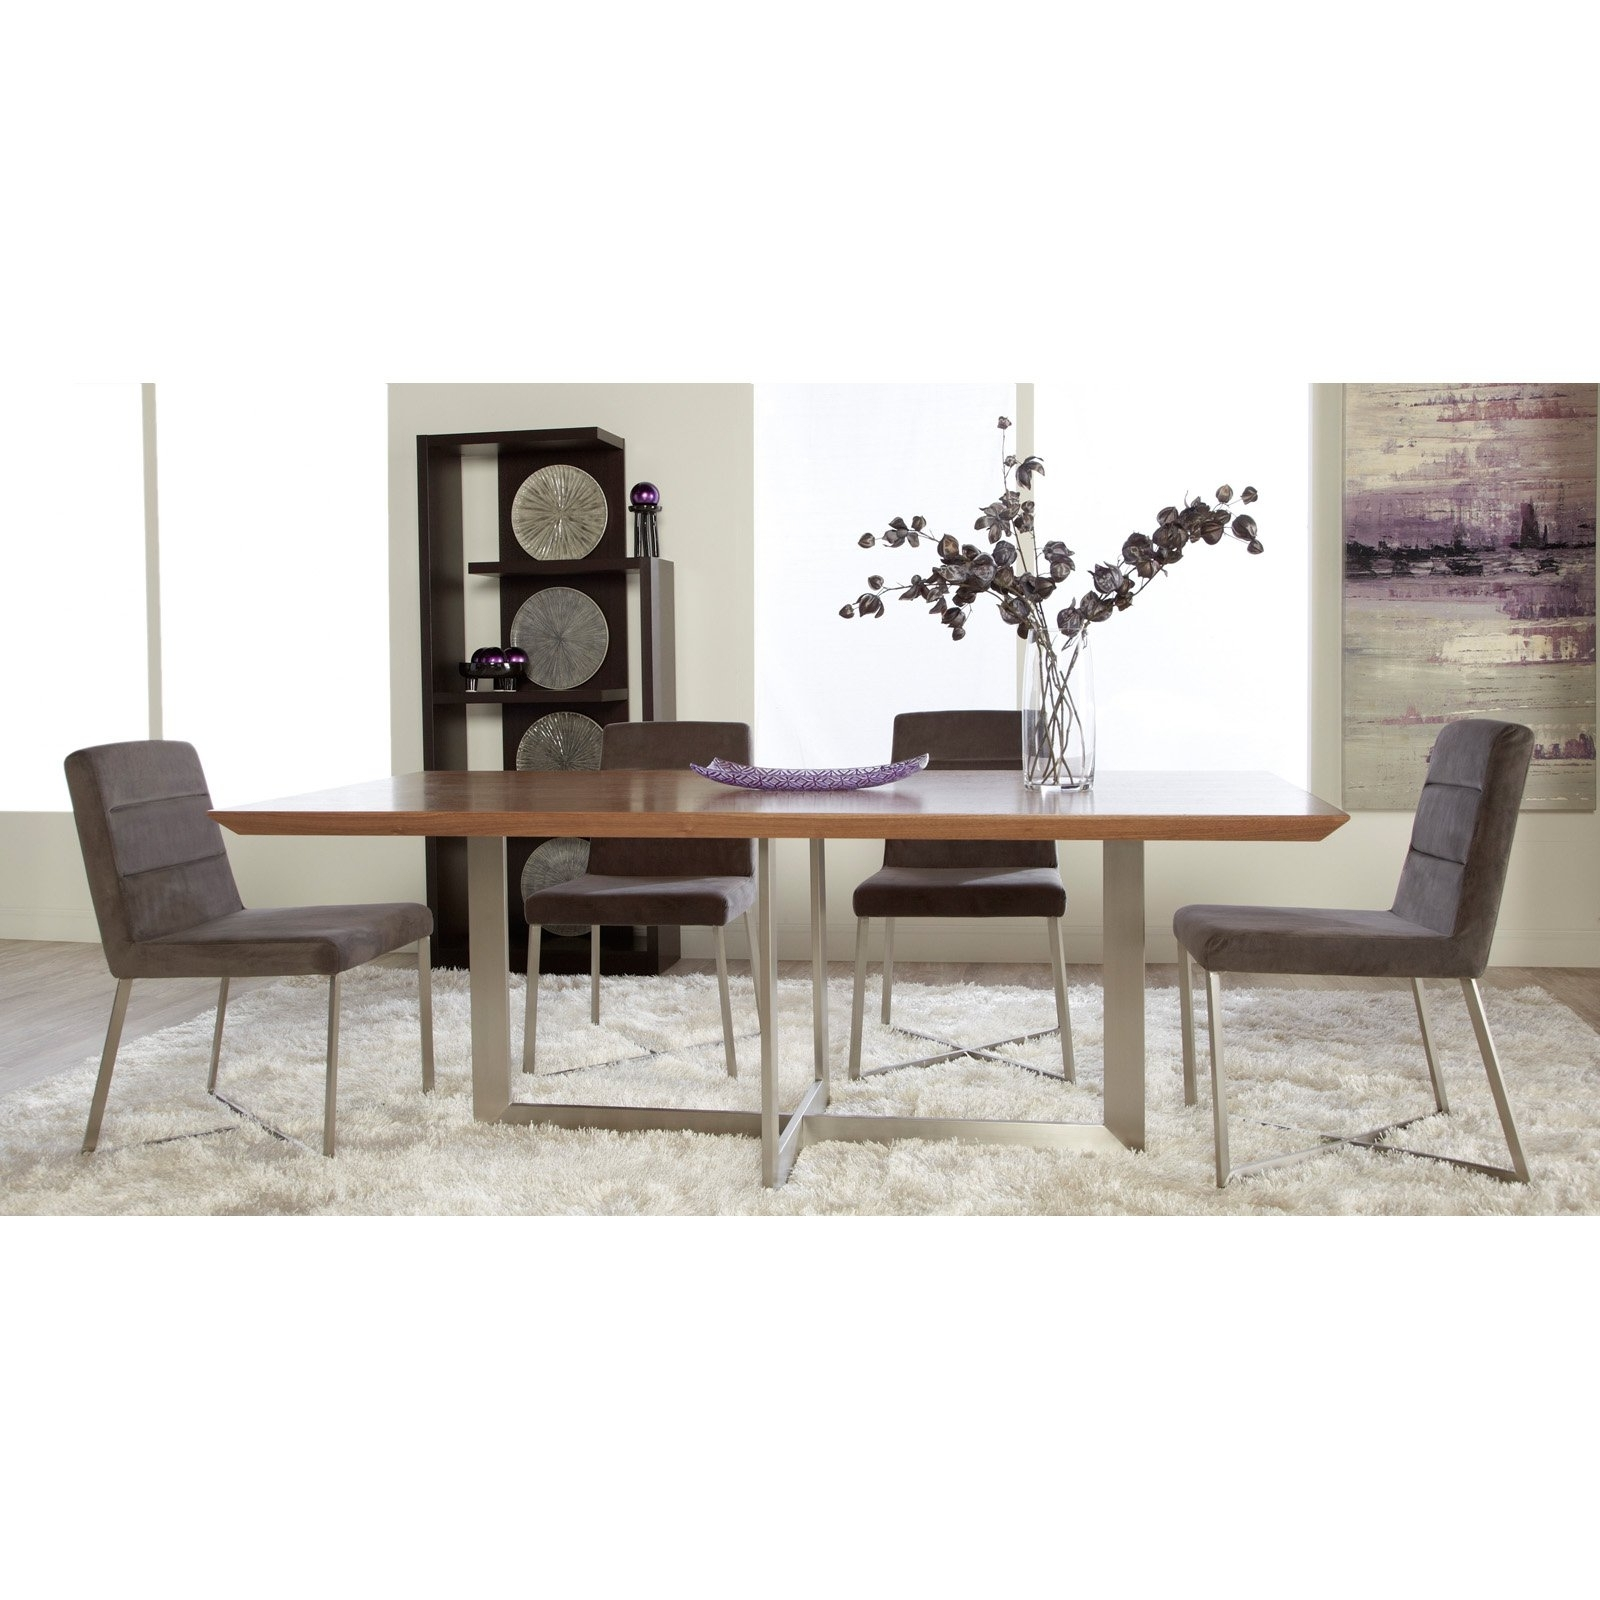 Walnut Dining Table Sets With Regard To Most Popular Euro Style Tosca 5 Piece Walnut Dining Table Set – Tosca Grey Chairs (View 20 of 25)